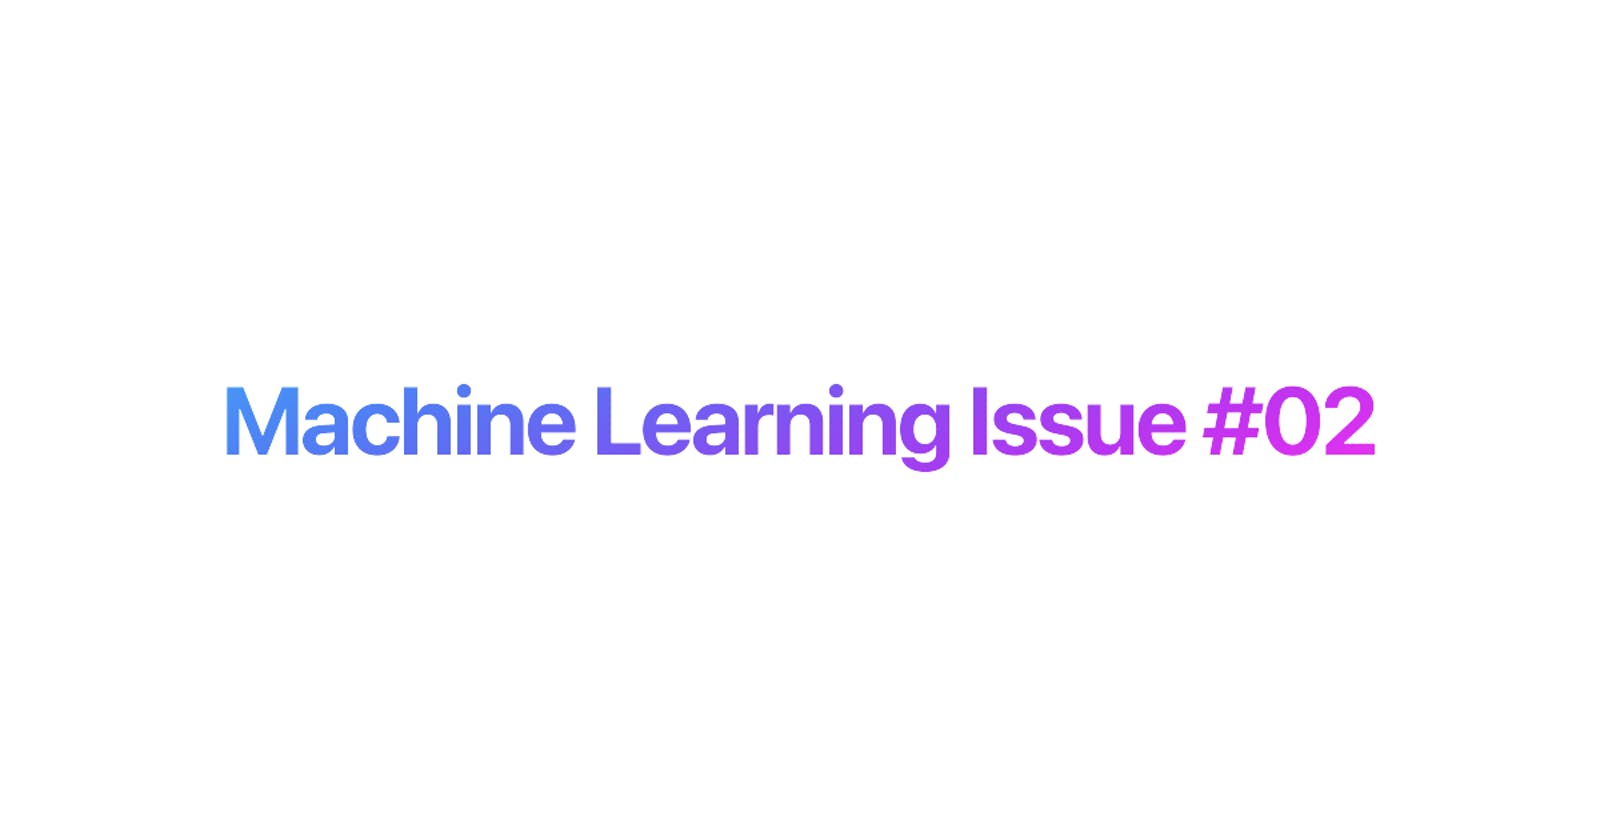 Machine Learning Issue #02